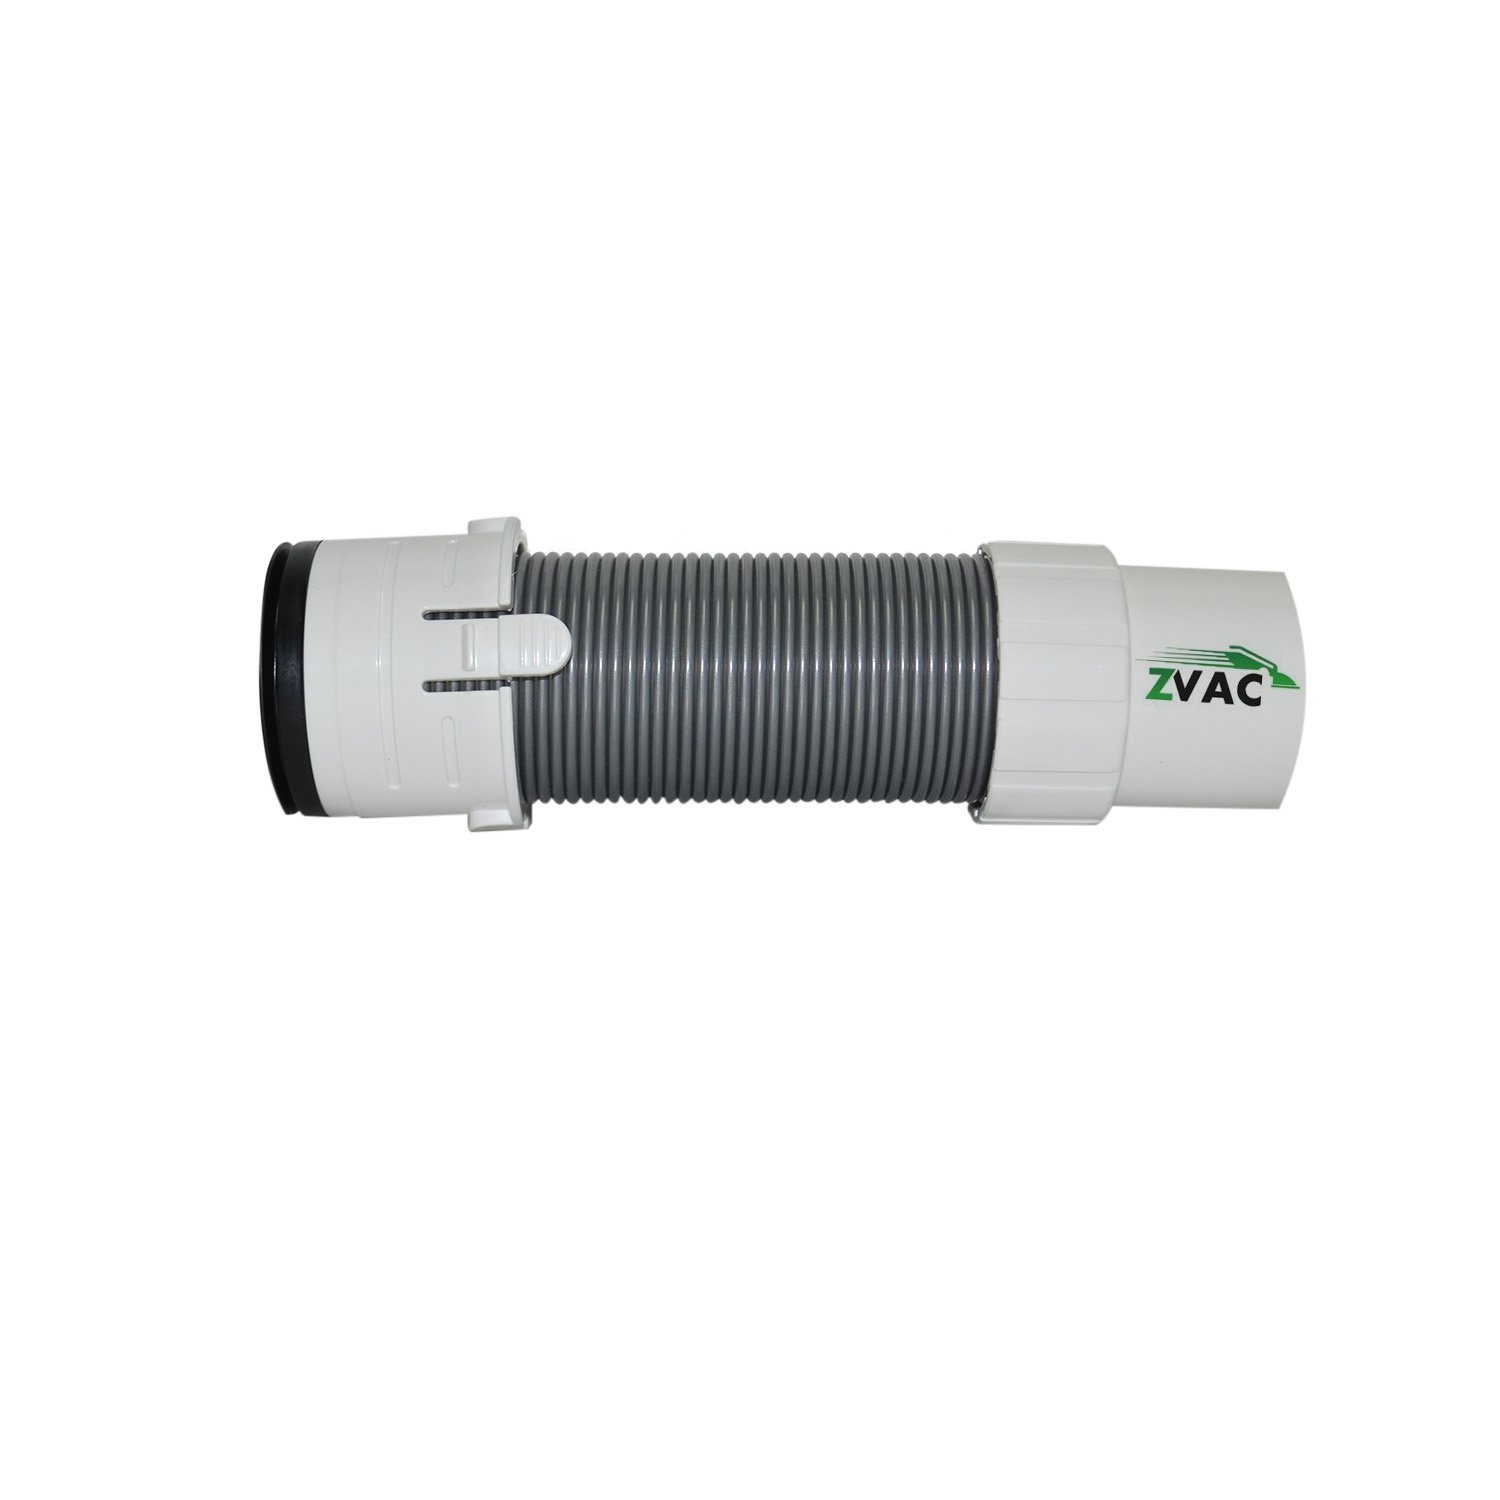 ZVac Compatible Hose Part Replacement for Shark Navigator Lift Away Hose Floor Nozzle Hose. Replaces Part# 156FFJ. Fits Shark Navigator Lift-Away Pro NV356E NV355 NV357 & NV370 AX-AY-ABHI-116174